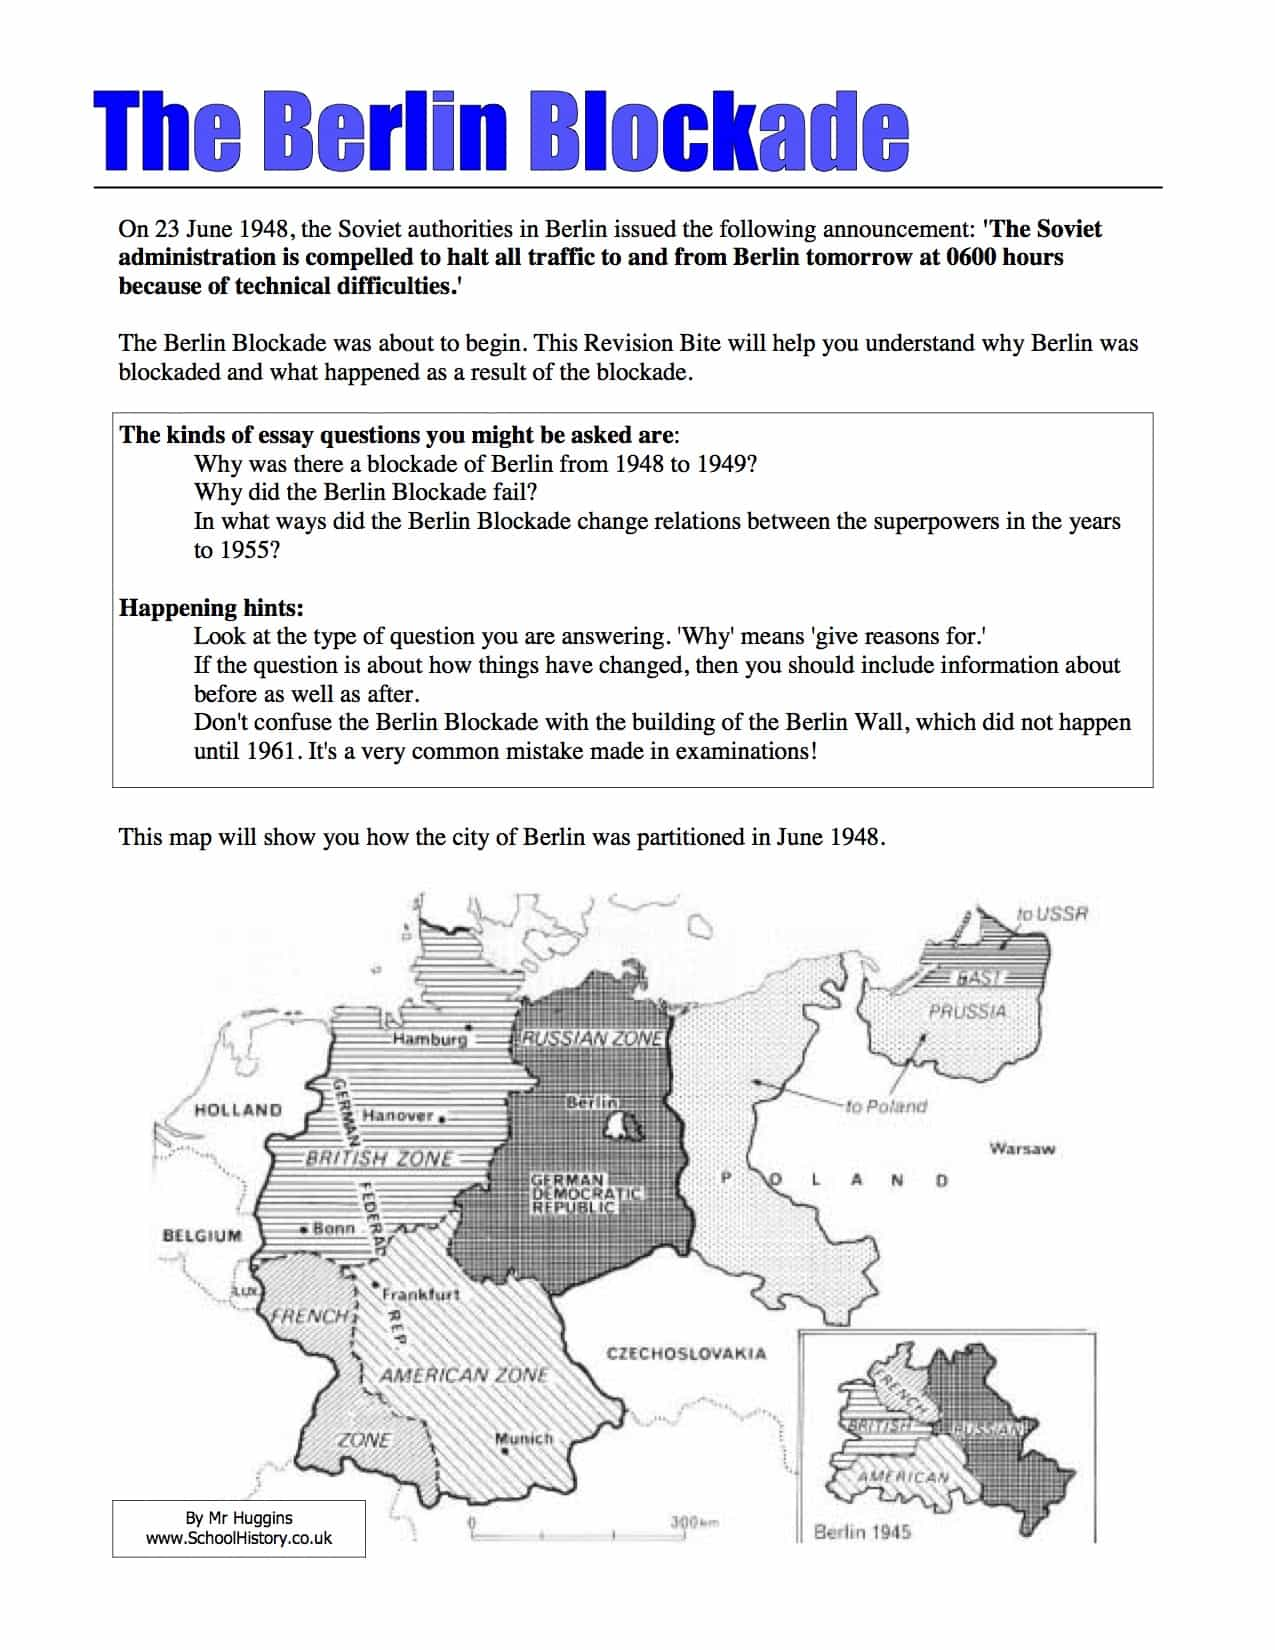 The Blockade Of Berlin Summary Worksheet